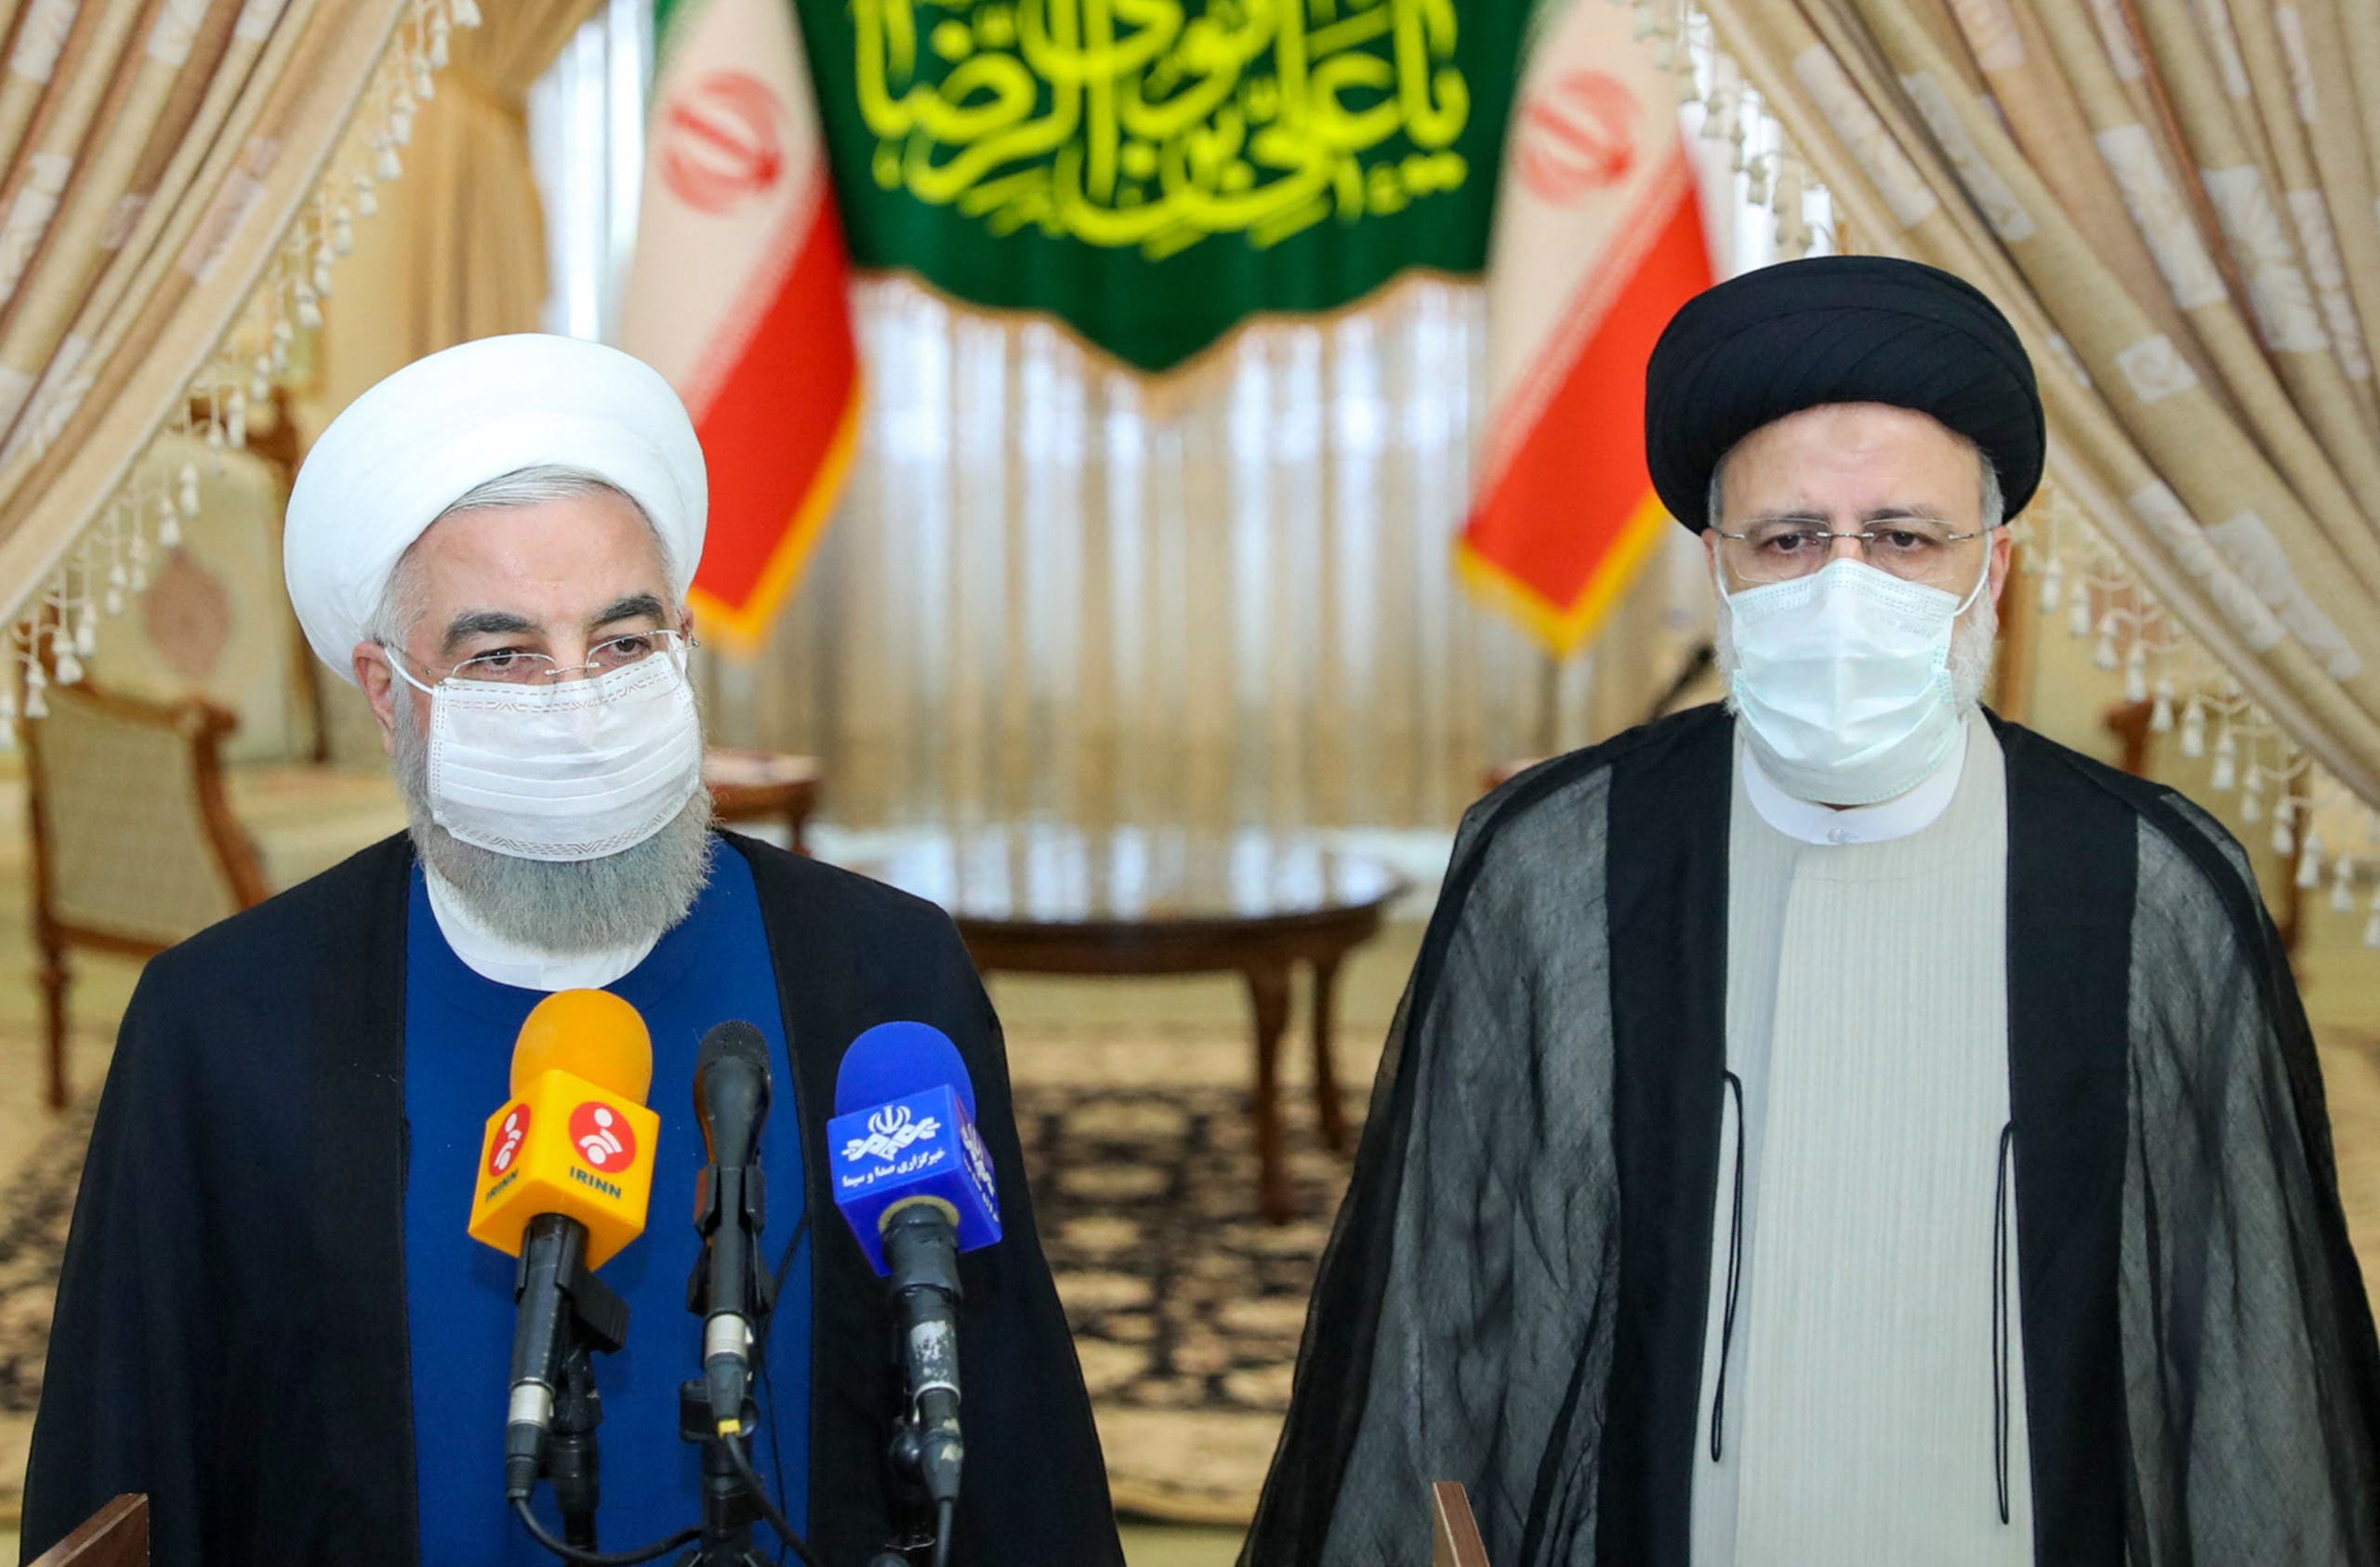 A handout picture provided by the Iranian presidency on June 19, 2021, shows outgoing President Hassan Rouhani (L) taking in part in a press conference with President-elect Ebrahim Raisi (R) during his visit to congratulate the ultraconservative cleric on winning the presidential election. (Reuters)